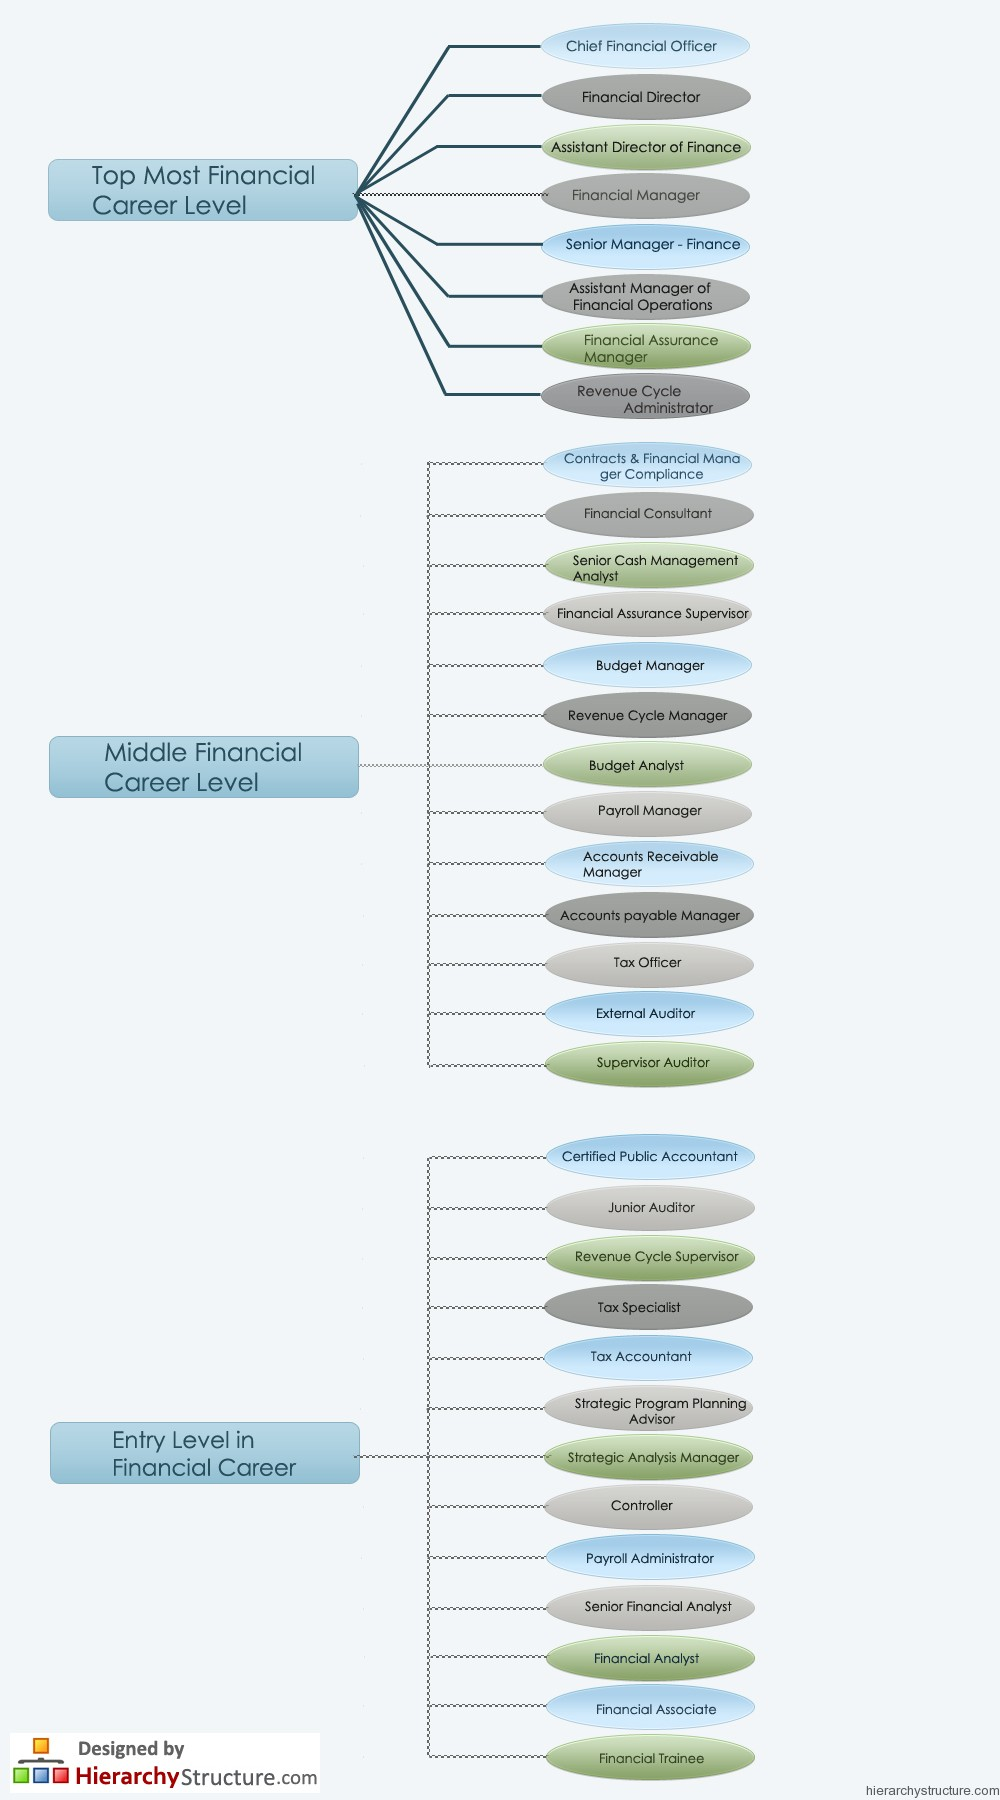 Financial Career Hierarchy Chart Hierarchystructure Com